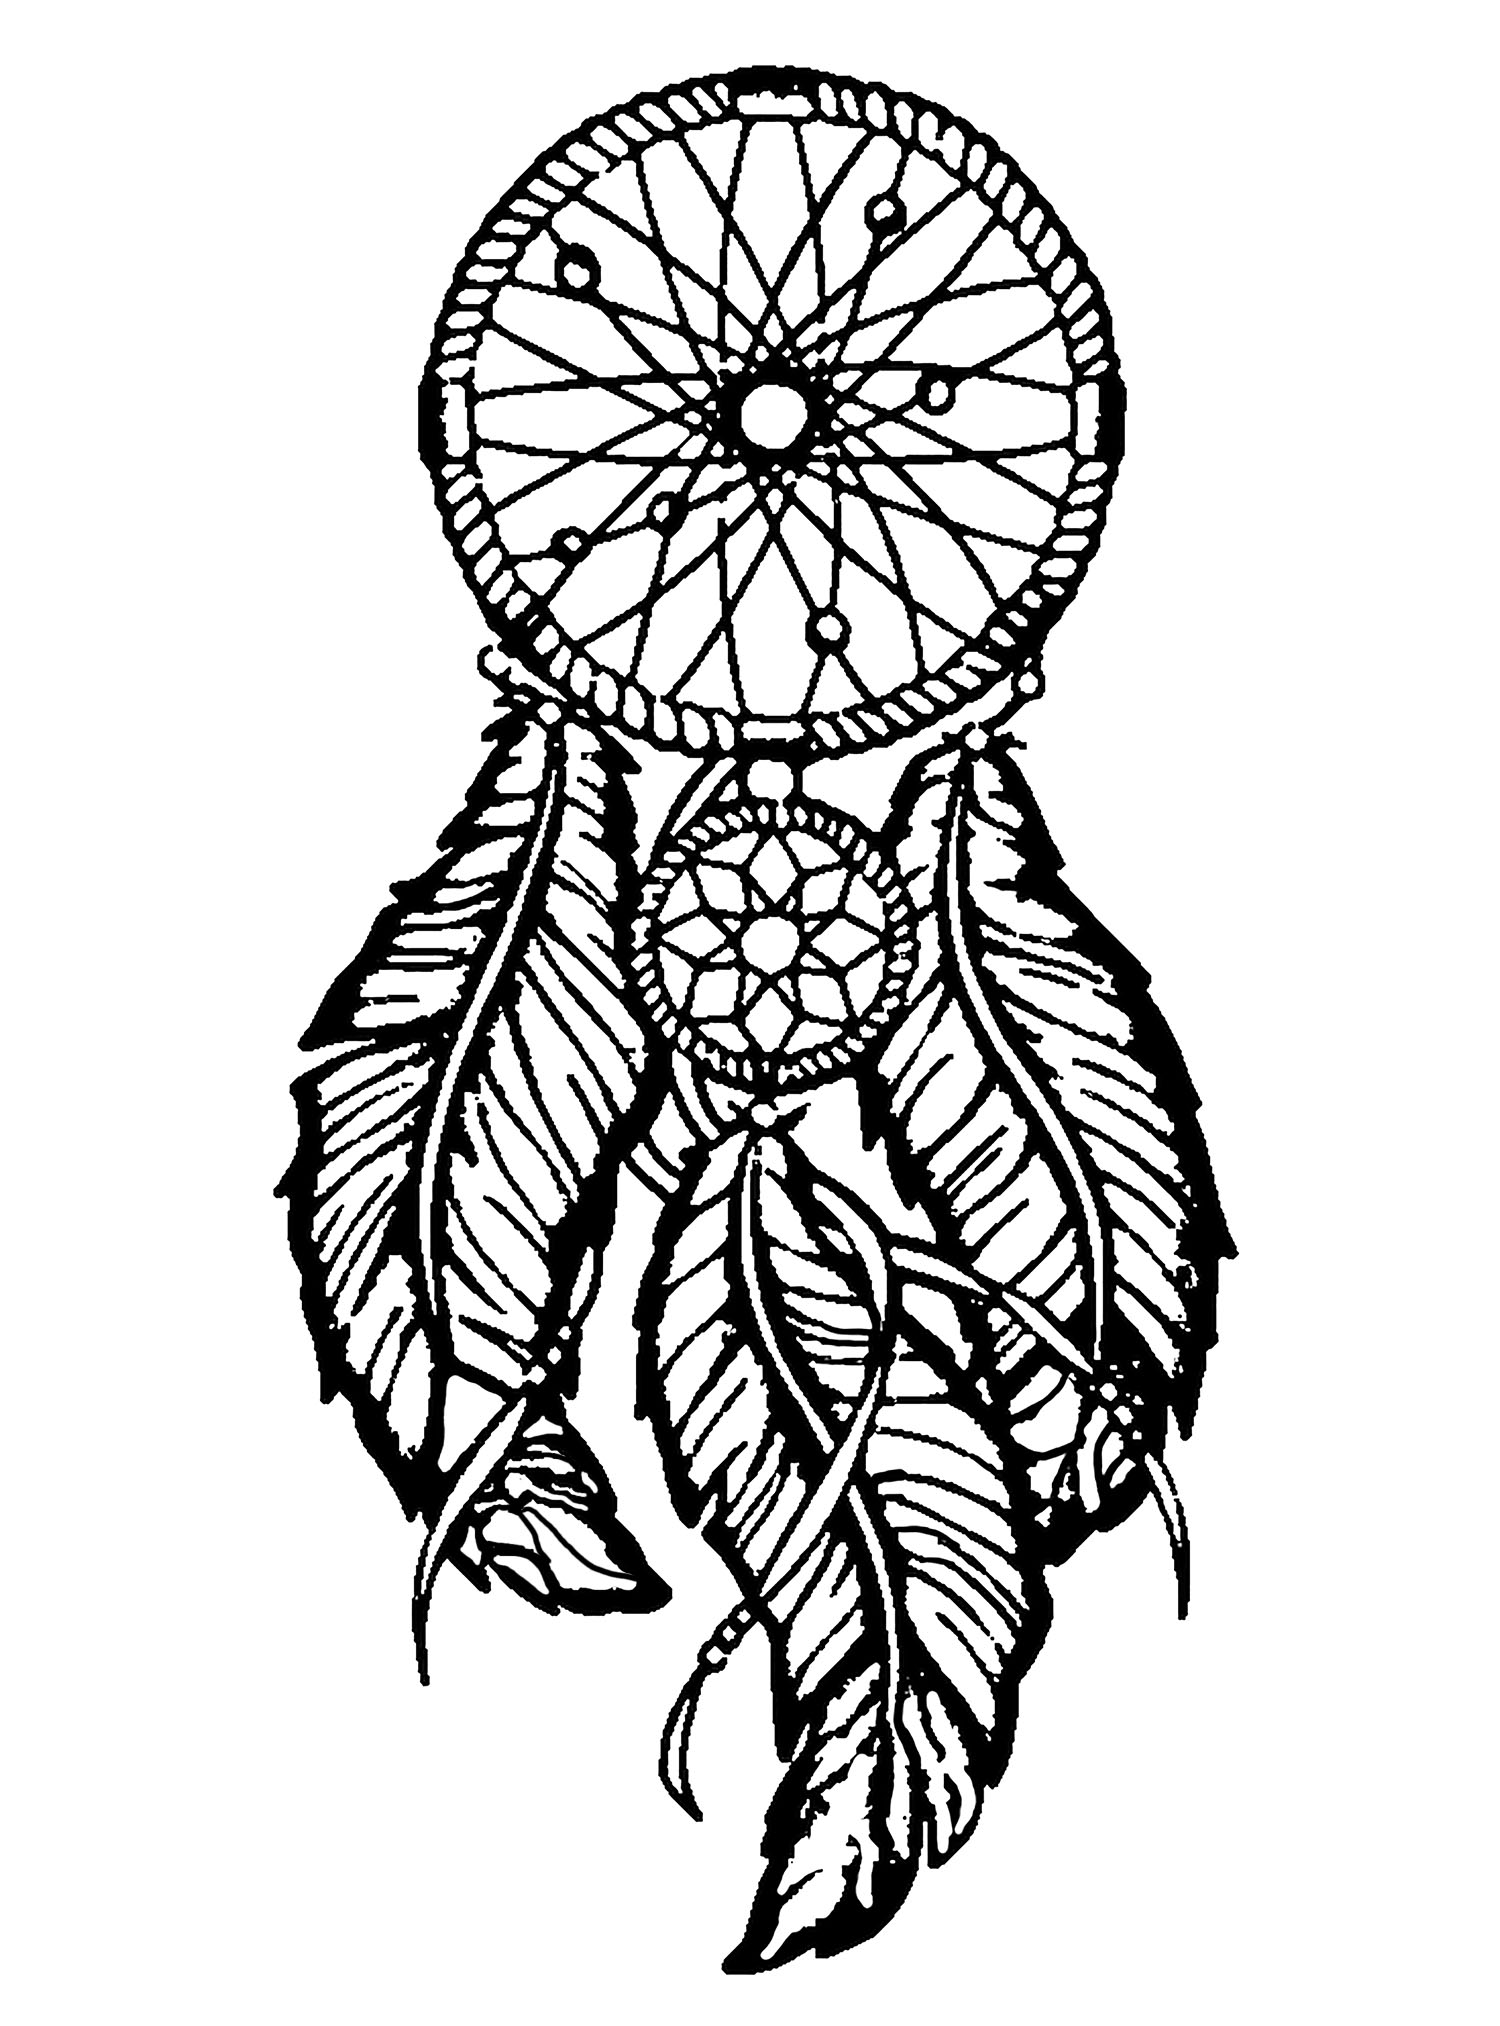 coloring pages for adults dream catchers free dream catcher coloring pages for adults printable to adults coloring dream pages for catchers